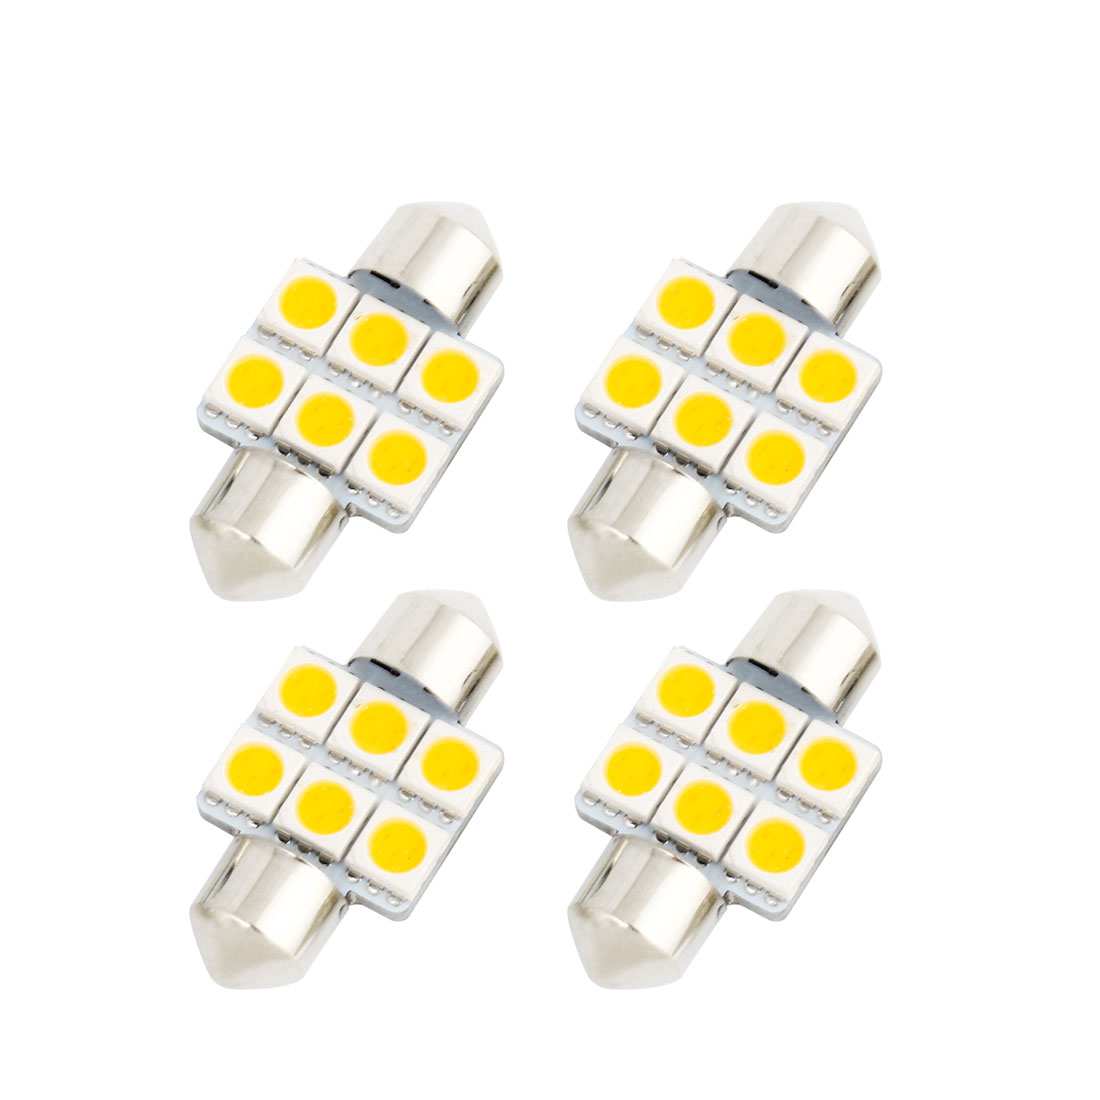 4Pcs 31mm 5050 SMD 6 LED Warm White Festoon Dome Map Reading Light DE3175 DE3022 DE3021 Internal